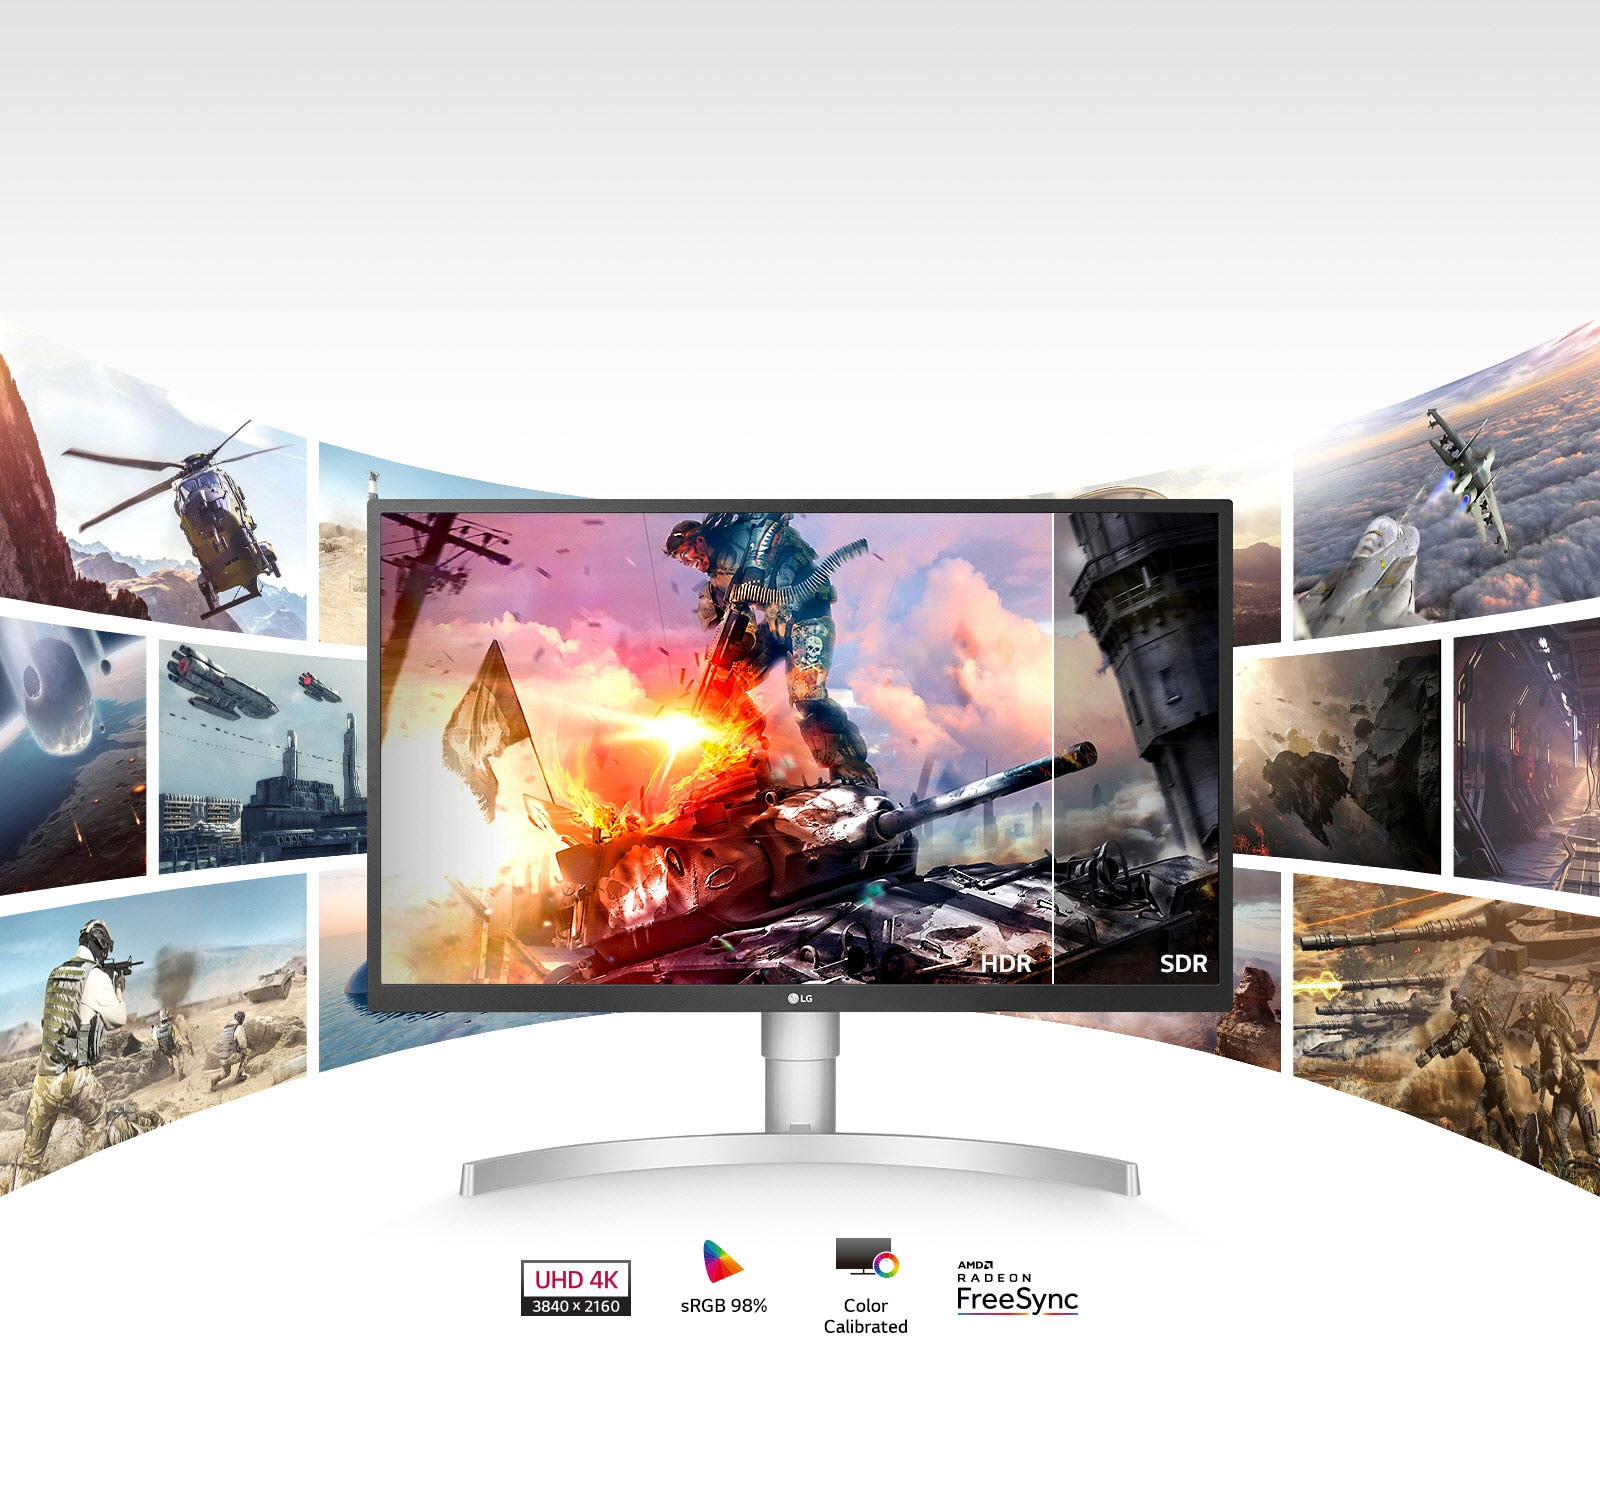 LG monitor display with video game graphics and multi-panel screens behind it.